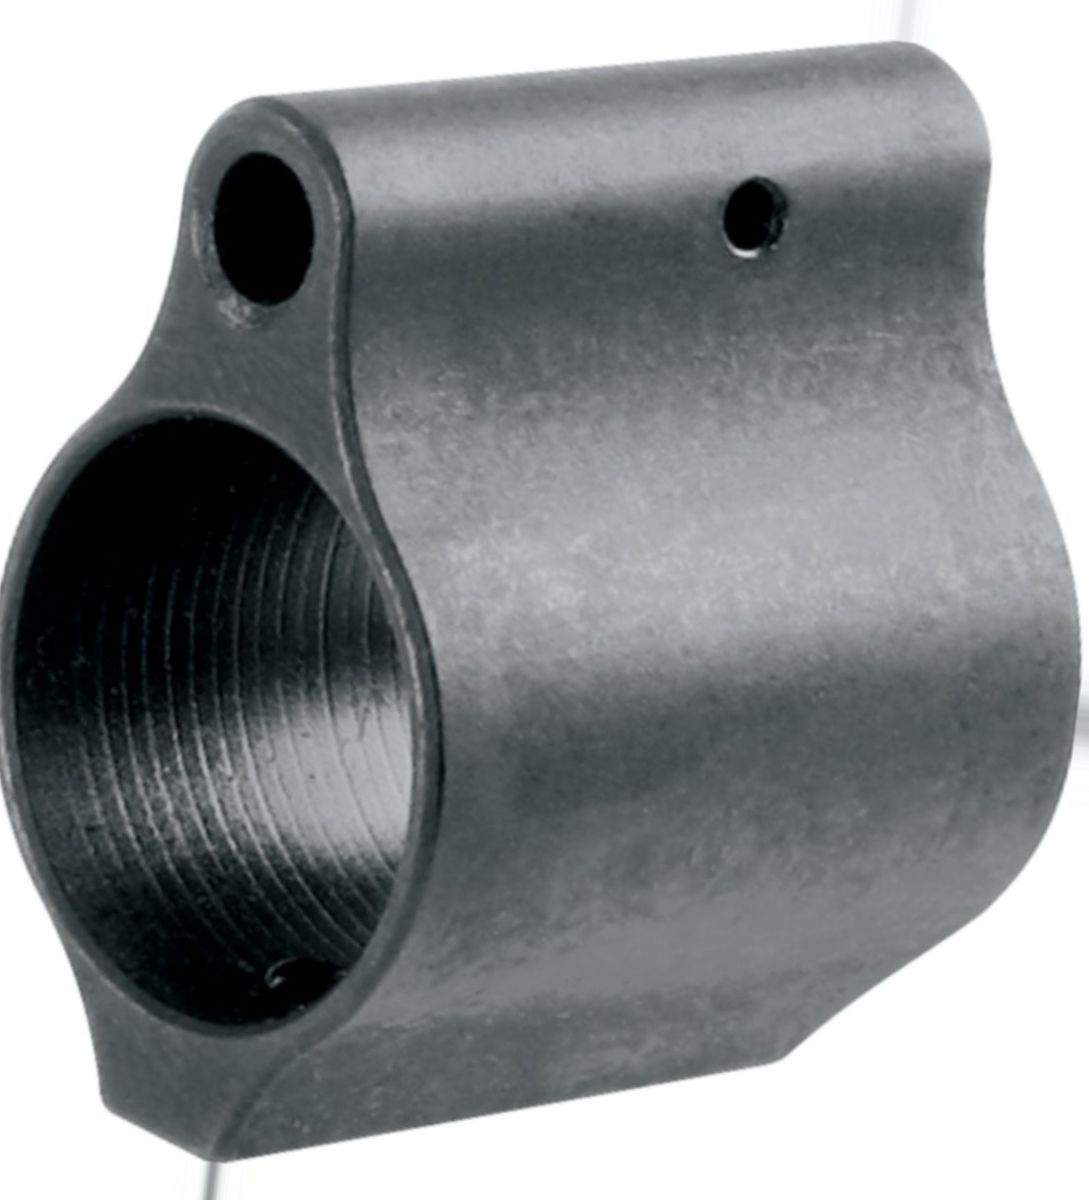 Midwest Industries Micro Gas Block